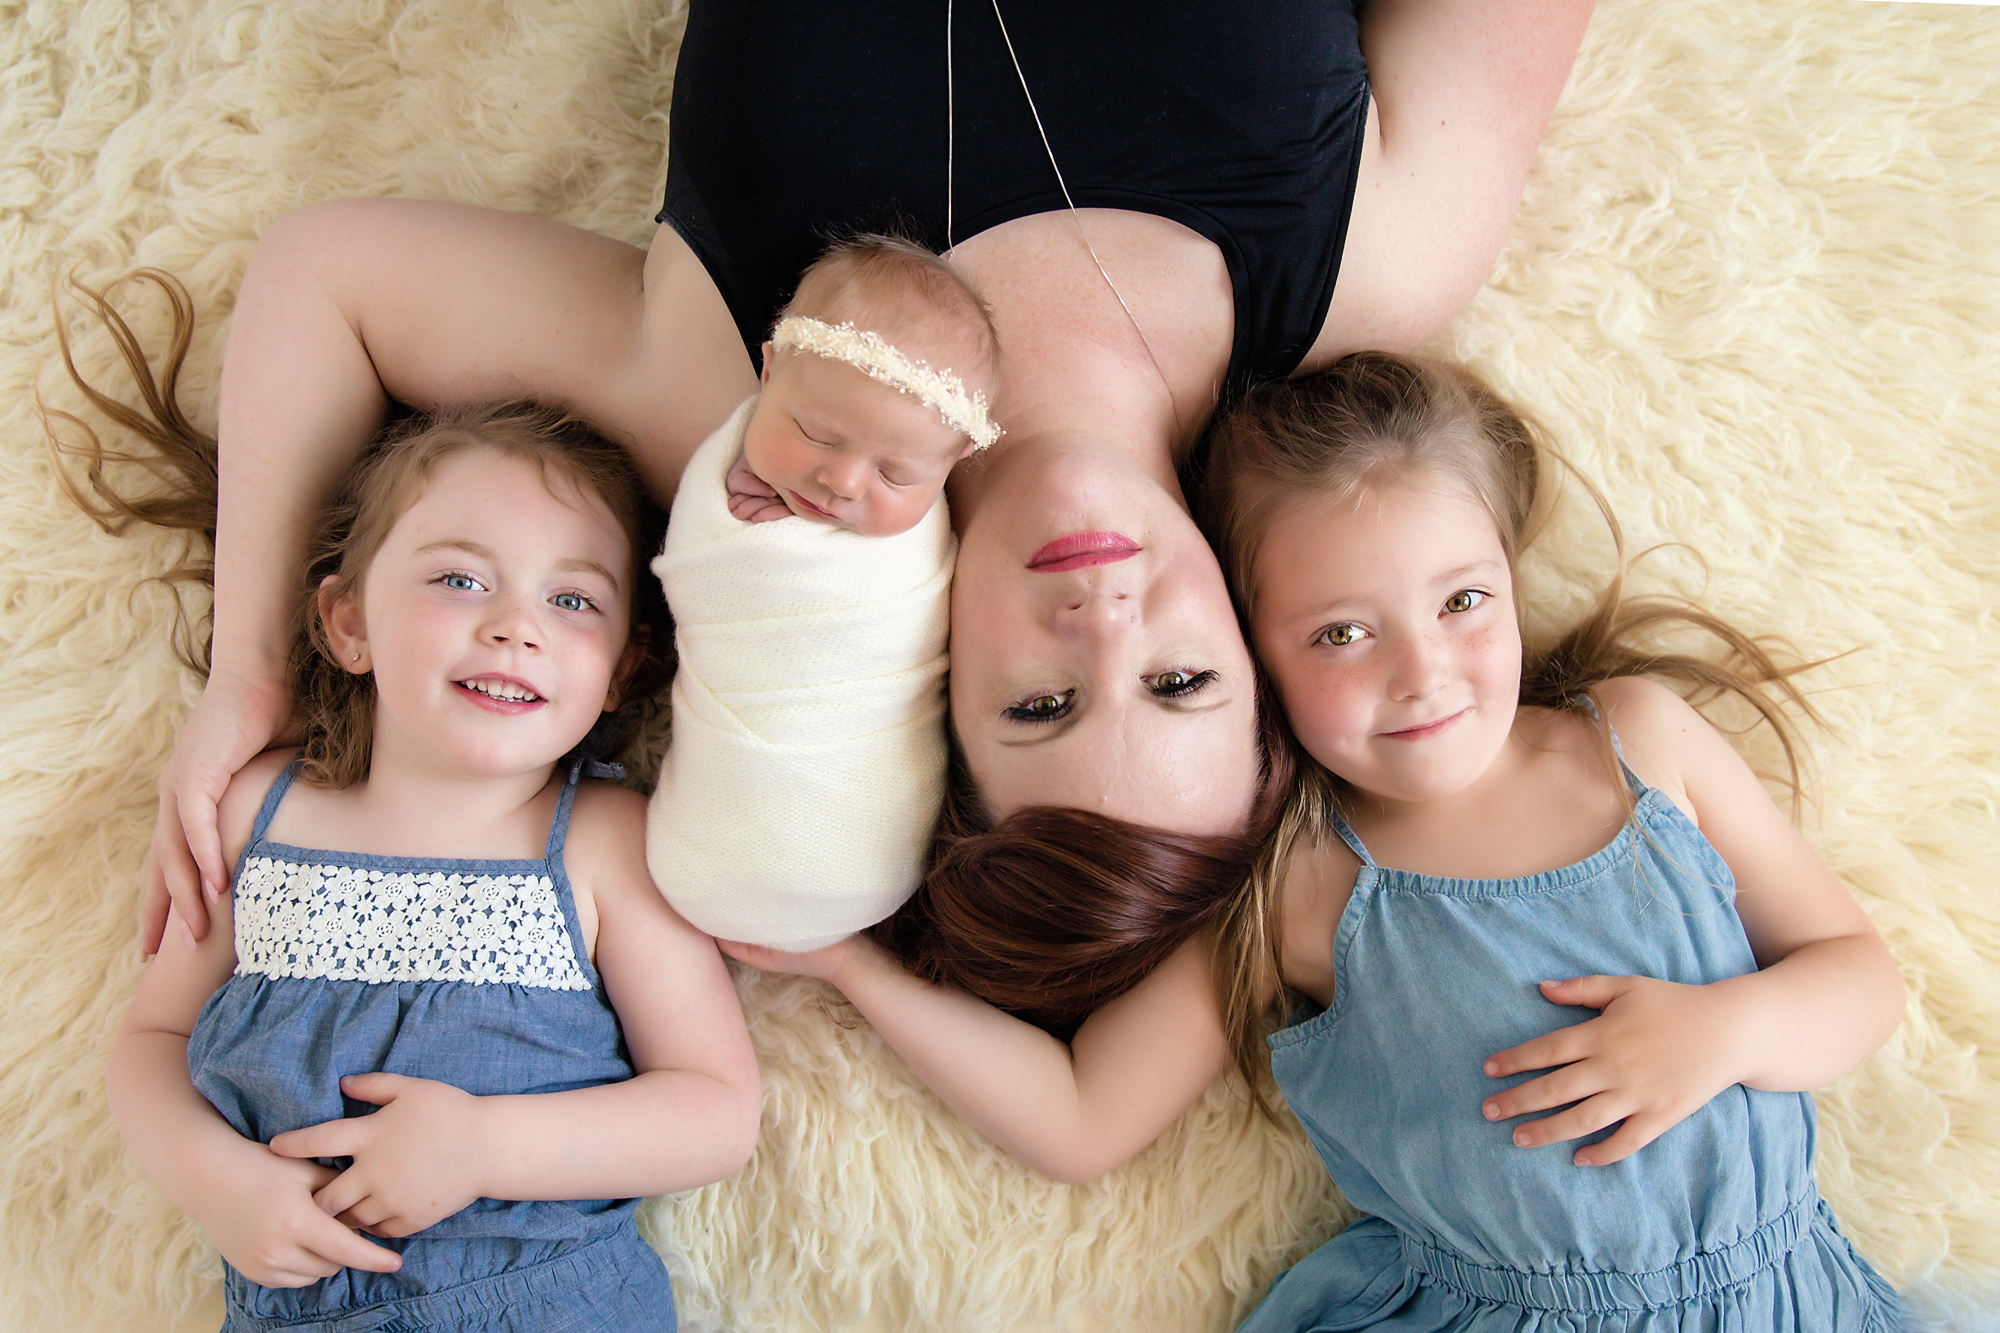 Newborn Photoshoot inspiration ideas. Calgary and Airdrie, Alberta Newborn and Baby photographer - Milashka Photography. Mom and 3 daughters are posed on a beanbag and flokati rug.